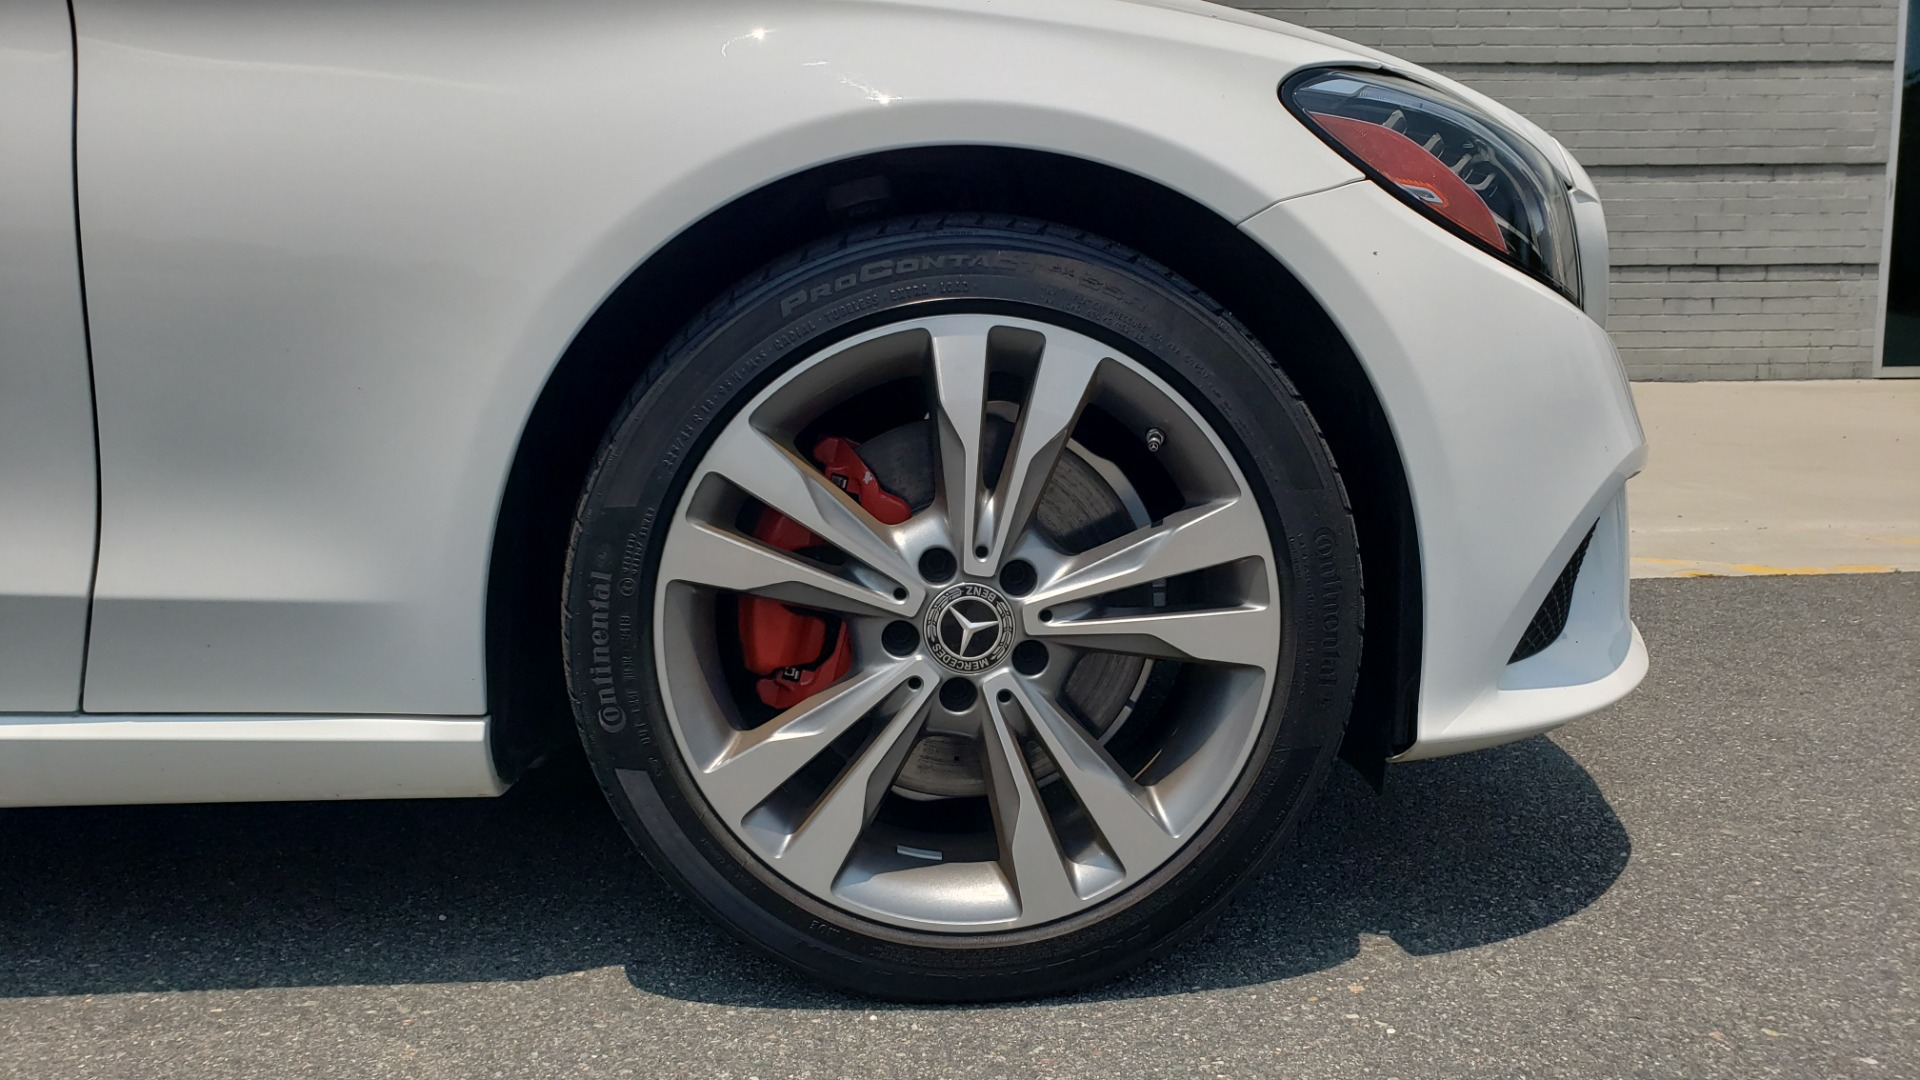 Used 2019 Mercedes-Benz C-CLASS C 300 CABRIOLET 2.0L / AUTO / NAV / HD RADIO / REARVIEW for sale $46,995 at Formula Imports in Charlotte NC 28227 72